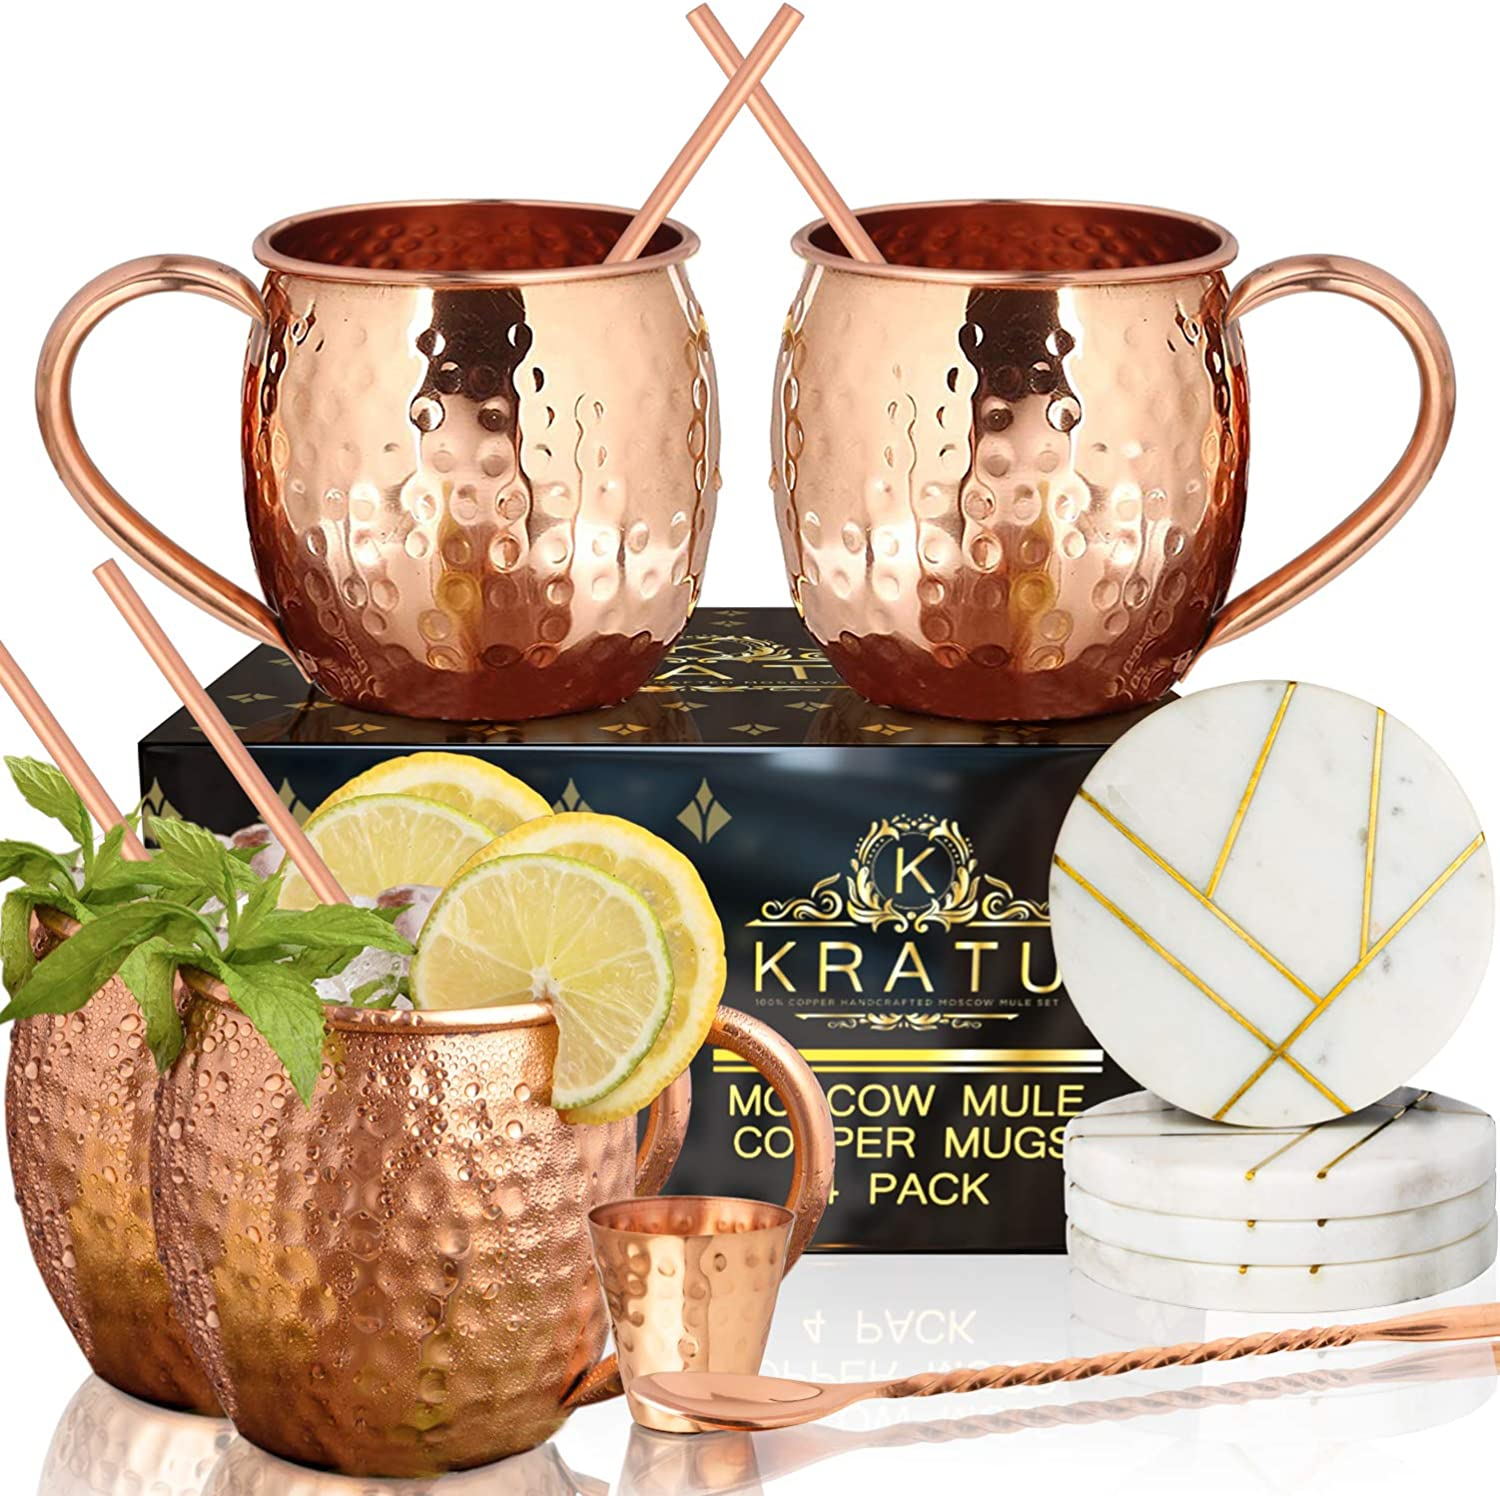 Moscow Mule Copper Mugs 18 oz - Set of 4. With Real Marble Coasters. 100% HANDCRAFTED Pure Food Safe Copper Mug Cups | Gift Set - 4 Straws, 4 Marble Coaster, Shot Glass, Stirrer | KRATU